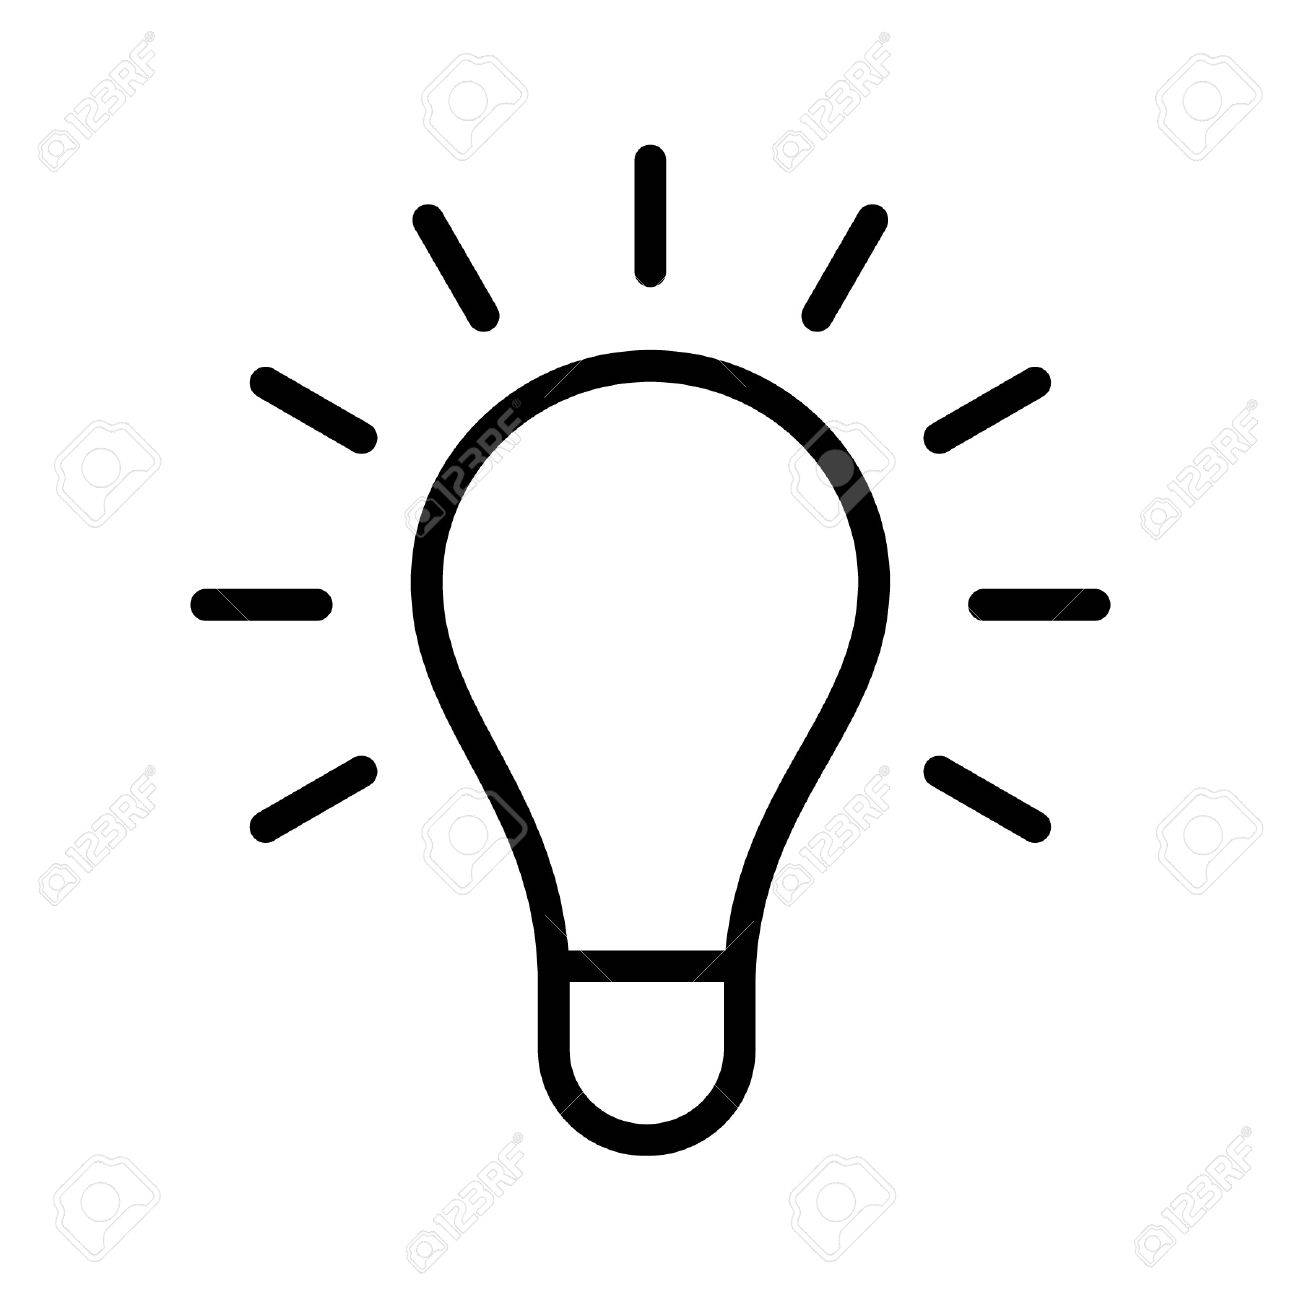 Bright Idea Light Bulb Line Art Icon For Apps And Websites Stock Vector